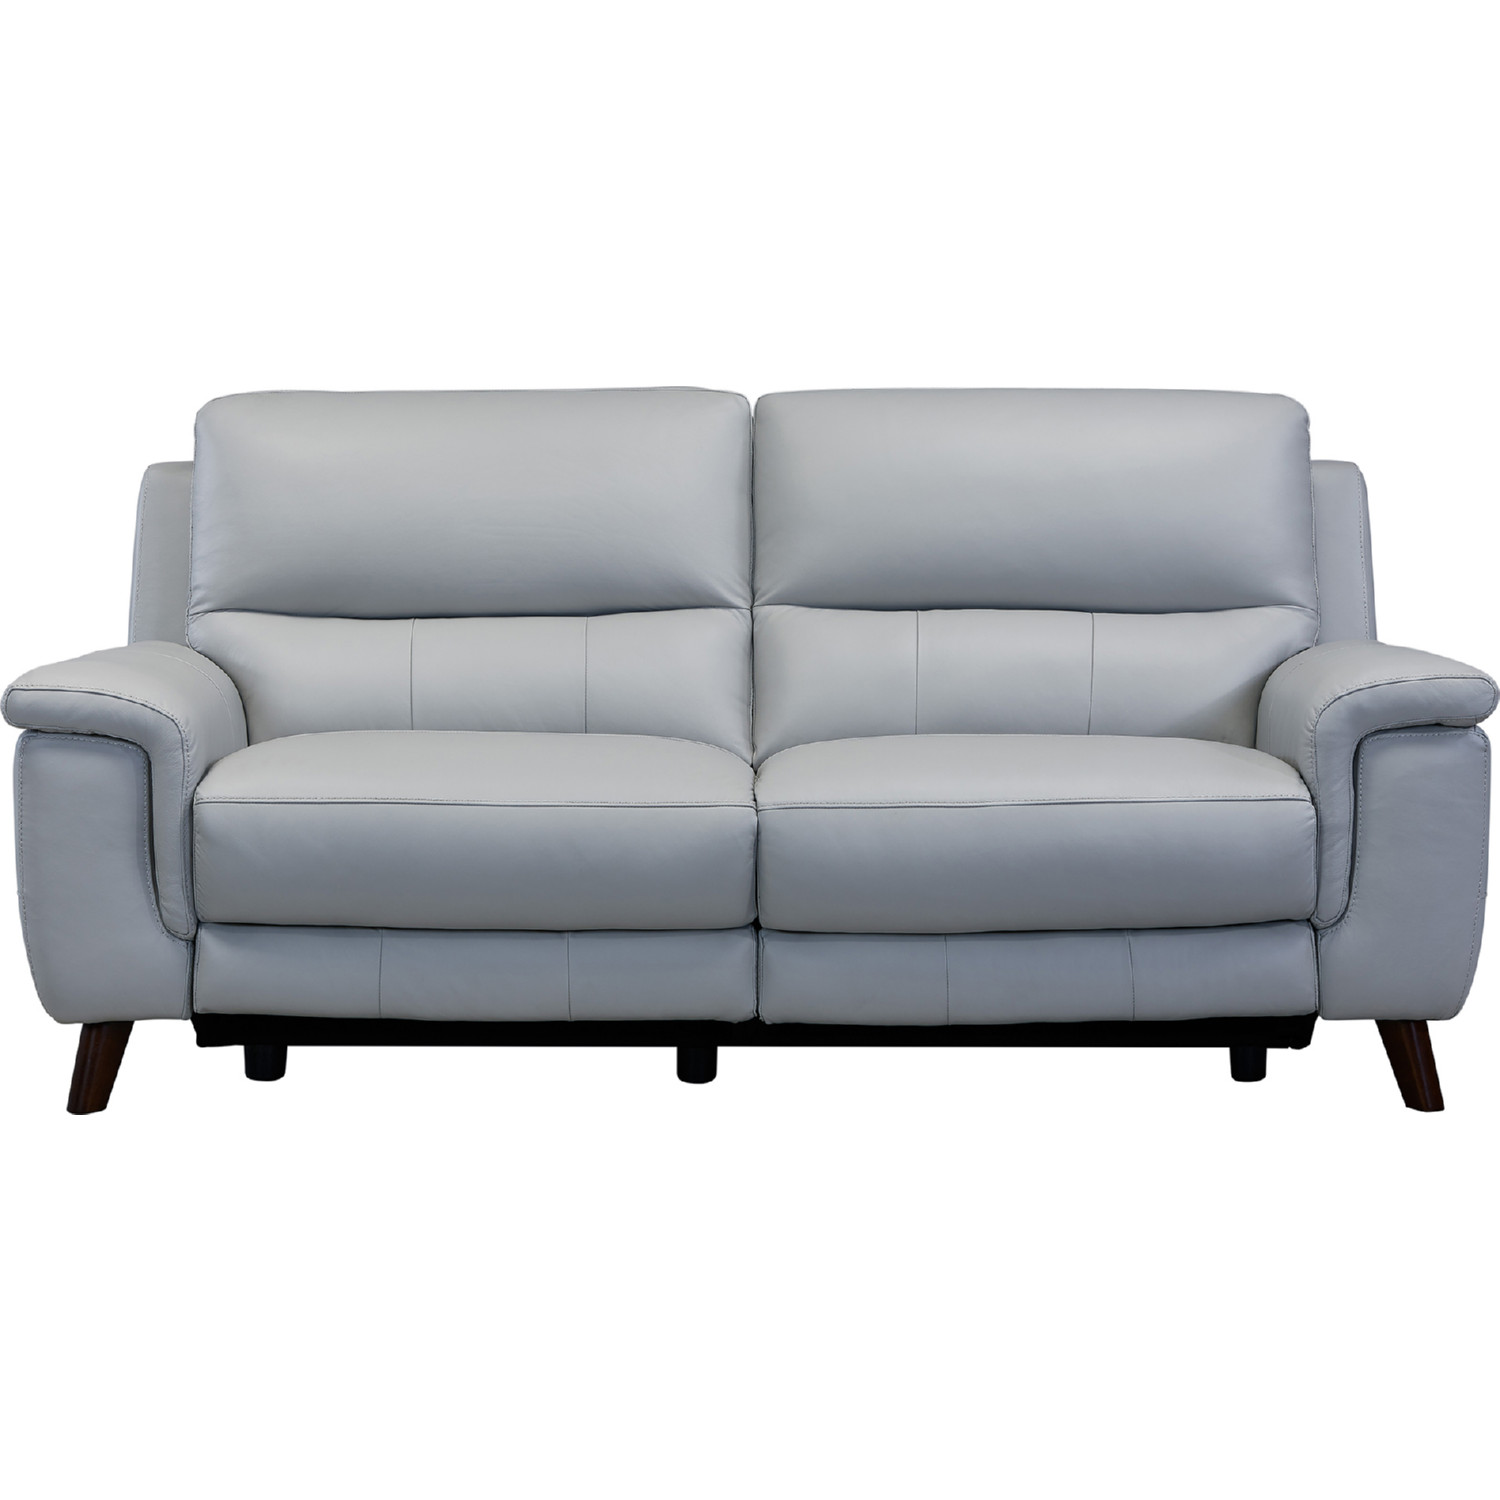 Lizette Power Reclining Sofa In In Dove Grey Leather Archaize Wood By Armen Living